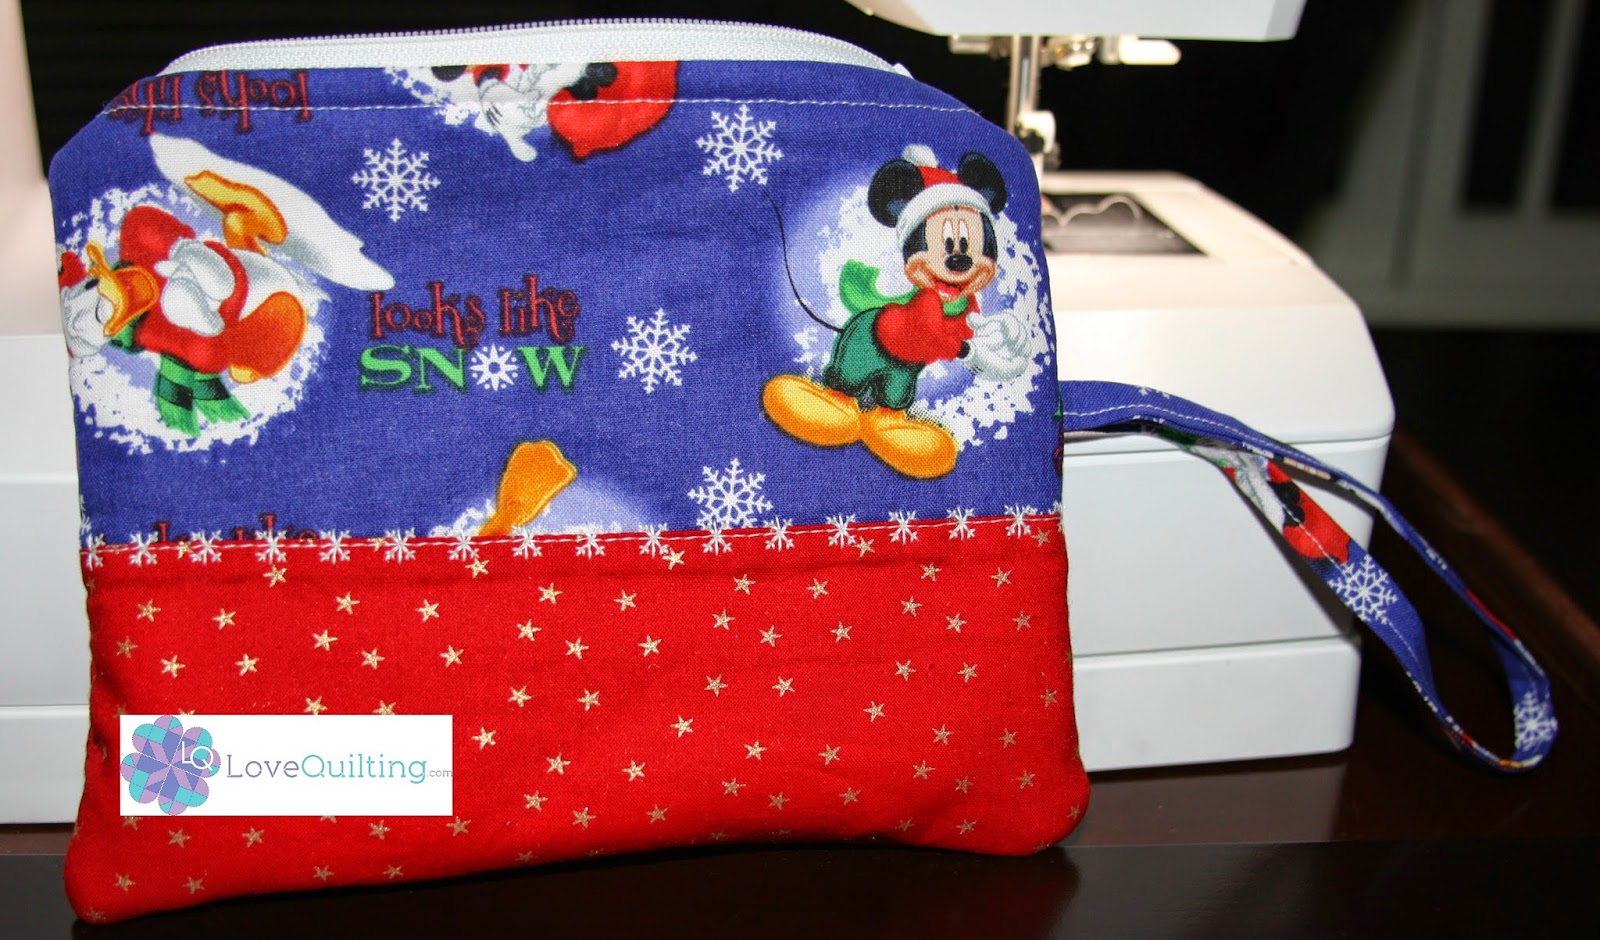 http://www.lovequilting.com/shop/free-lovequilting-com-exclusive/small-zippered-bag/